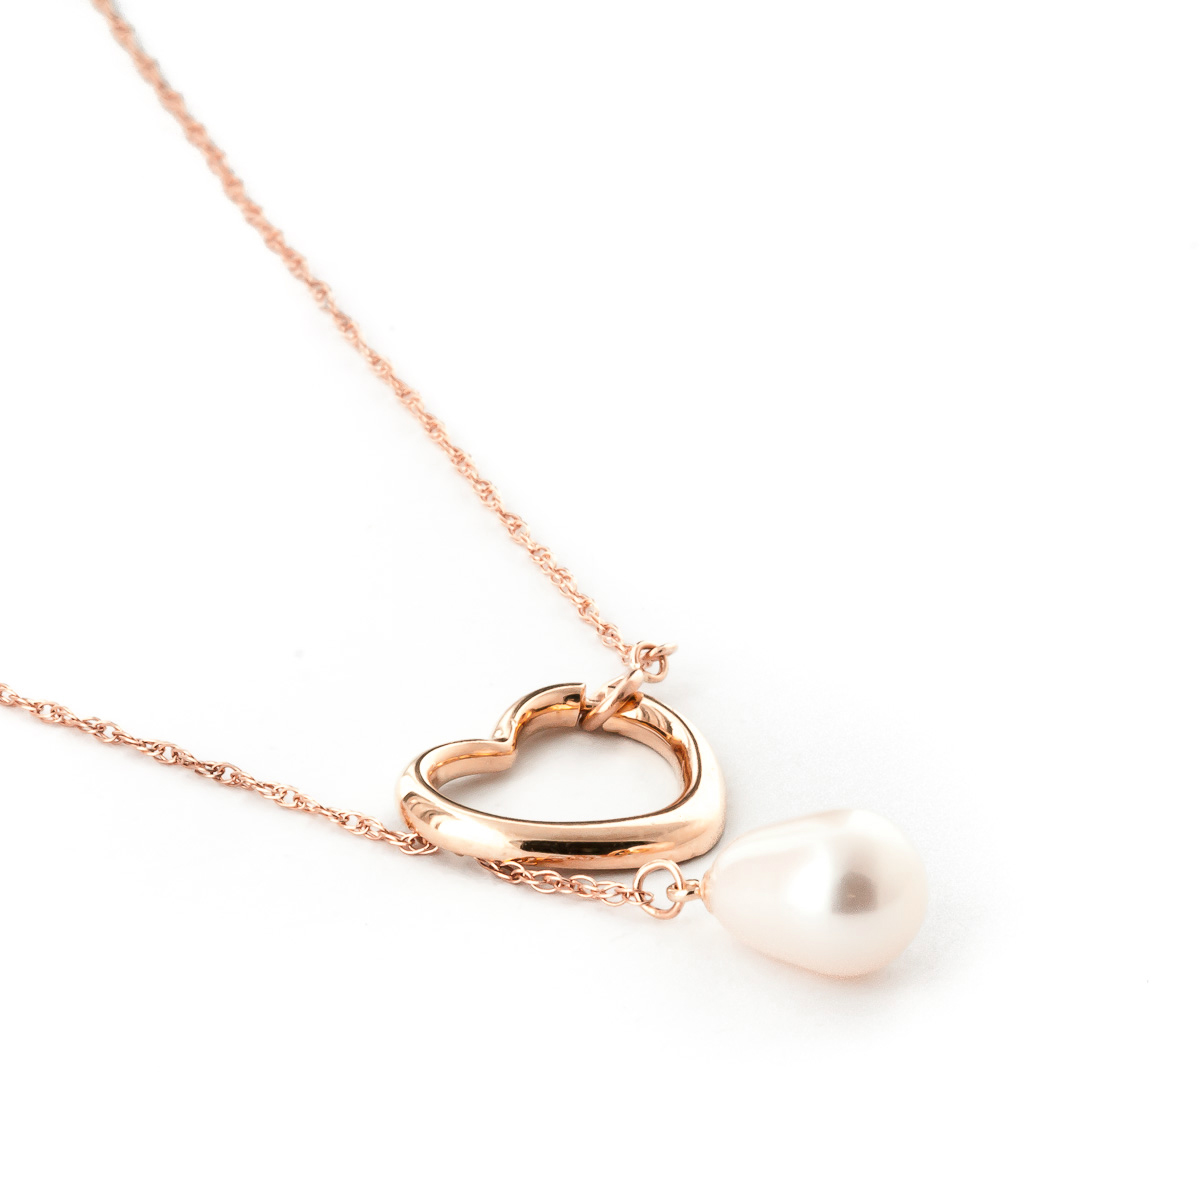 Oval Cut Pearl Pendant Necklace 4 ct in 9ct Rose Gold